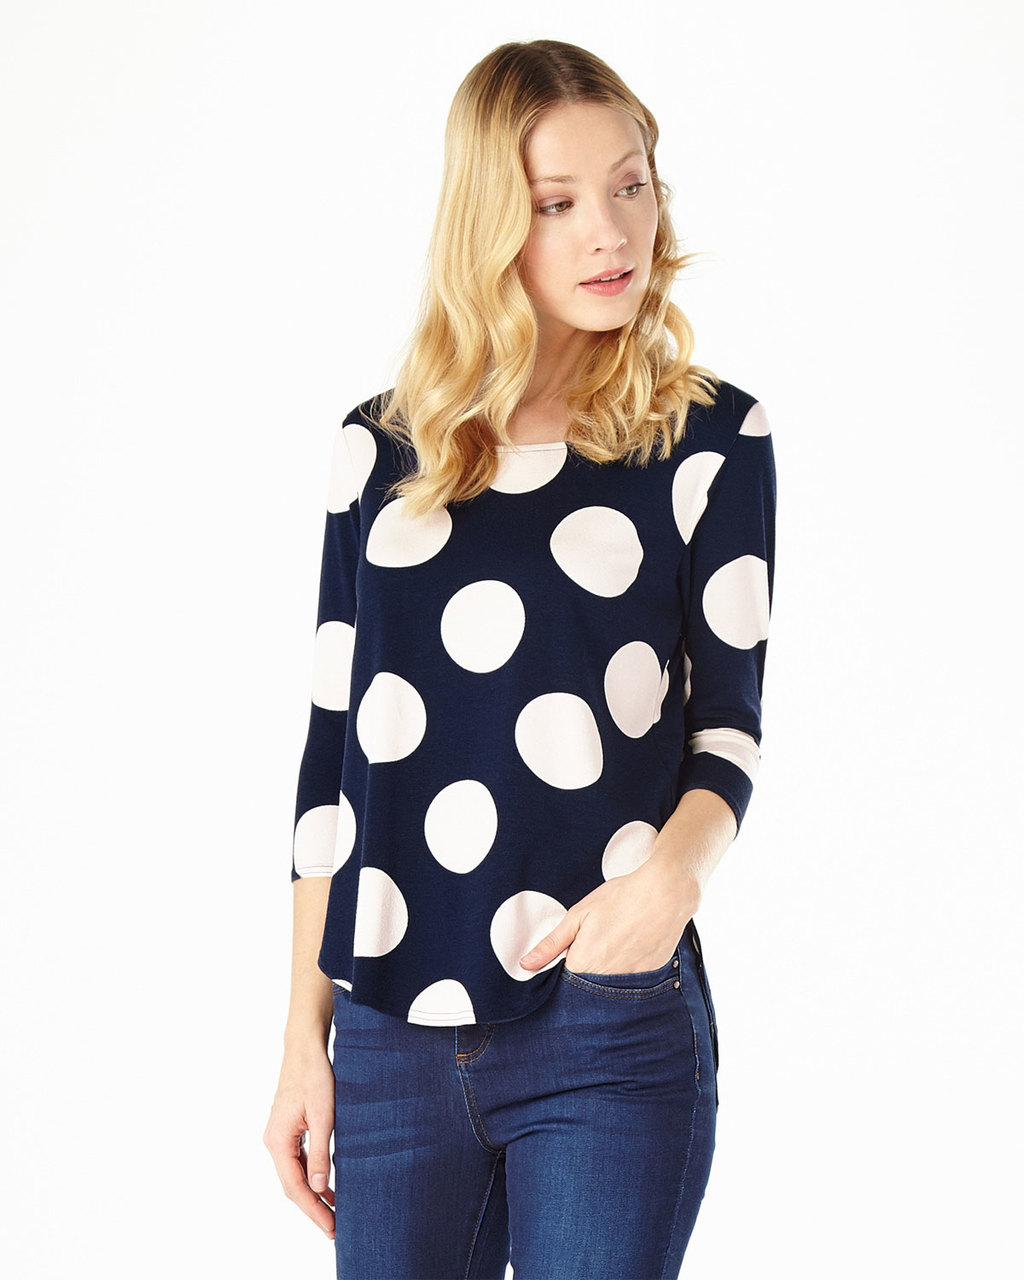 Anna Spot Top - neckline: round neck; pattern: polka dot; secondary colour: white; predominant colour: navy; occasions: casual, creative work; length: standard; style: top; fibres: viscose/rayon - stretch; fit: body skimming; sleeve length: 3/4 length; sleeve style: standard; pattern type: fabric; texture group: jersey - stretchy/drapey; pattern size: big & busy (top); season: s/s 2016; wardrobe: highlight